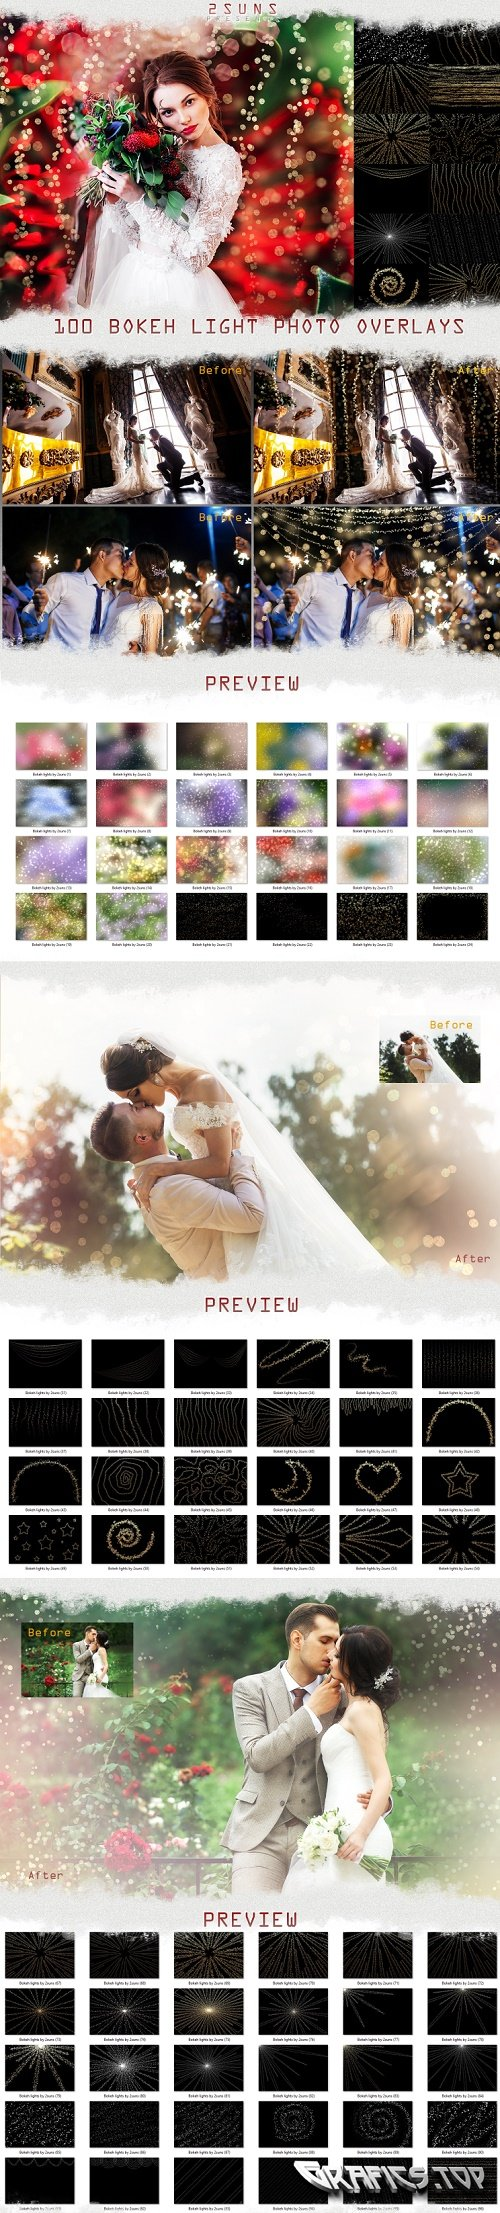 100 Wedding Sparklers Photoshop Overlays Christmas textures - 354993